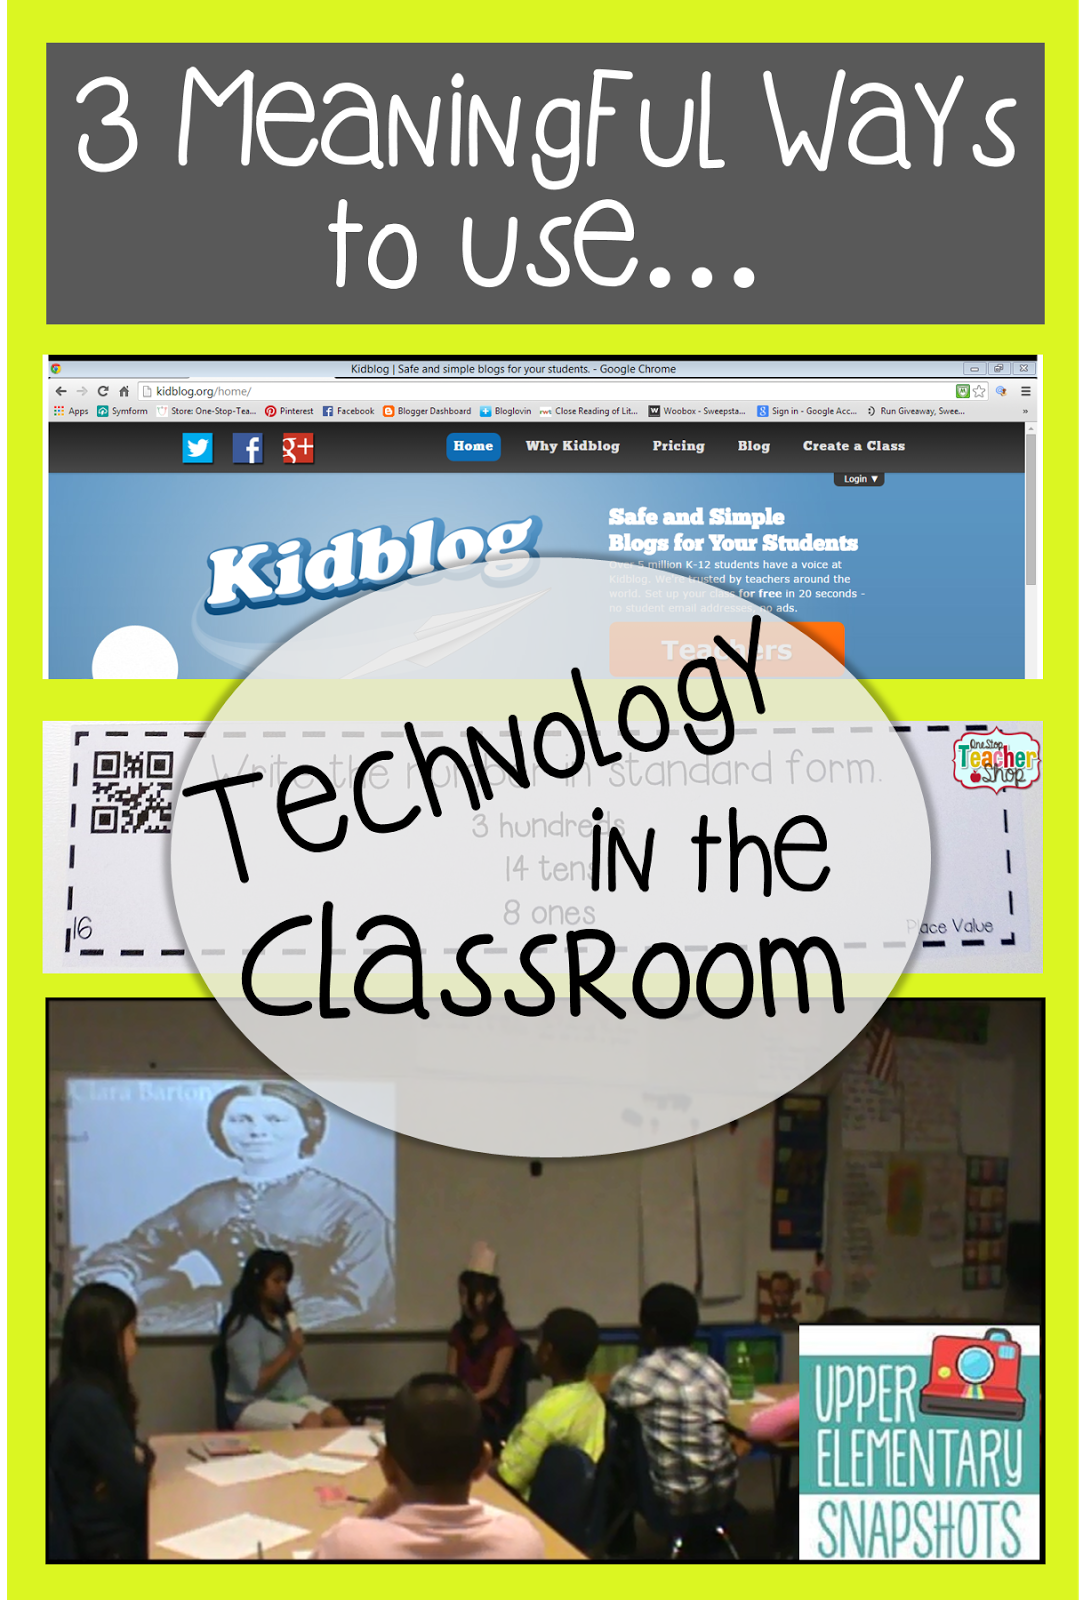 Elementary Classrooms Technology Use ~ Upper elementary snapshots meaningful ways to use